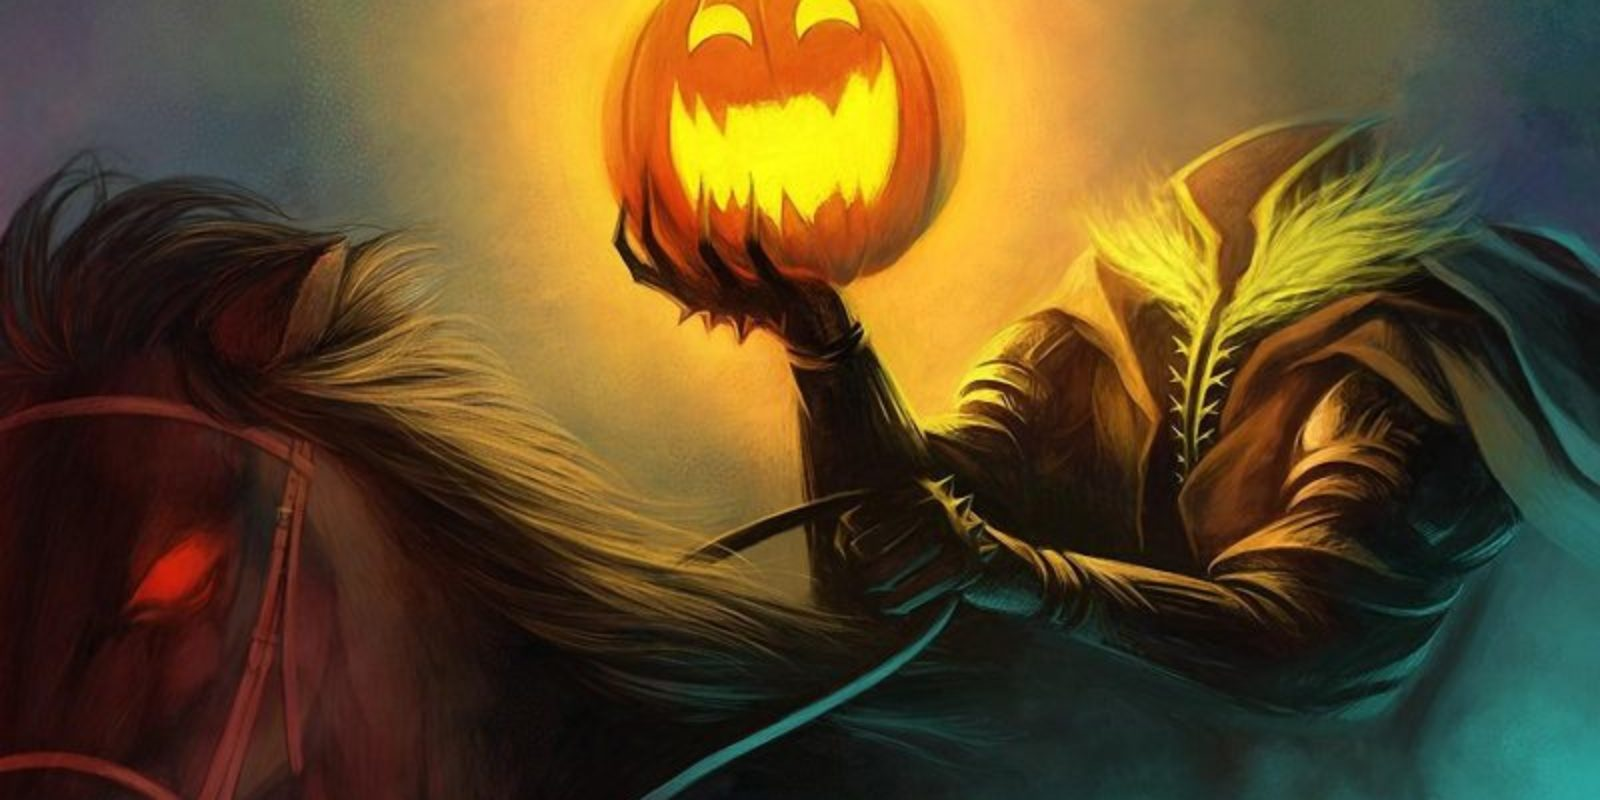 Halloween-holiday-headless-horseman-pumpkin-horse-4k-800x600